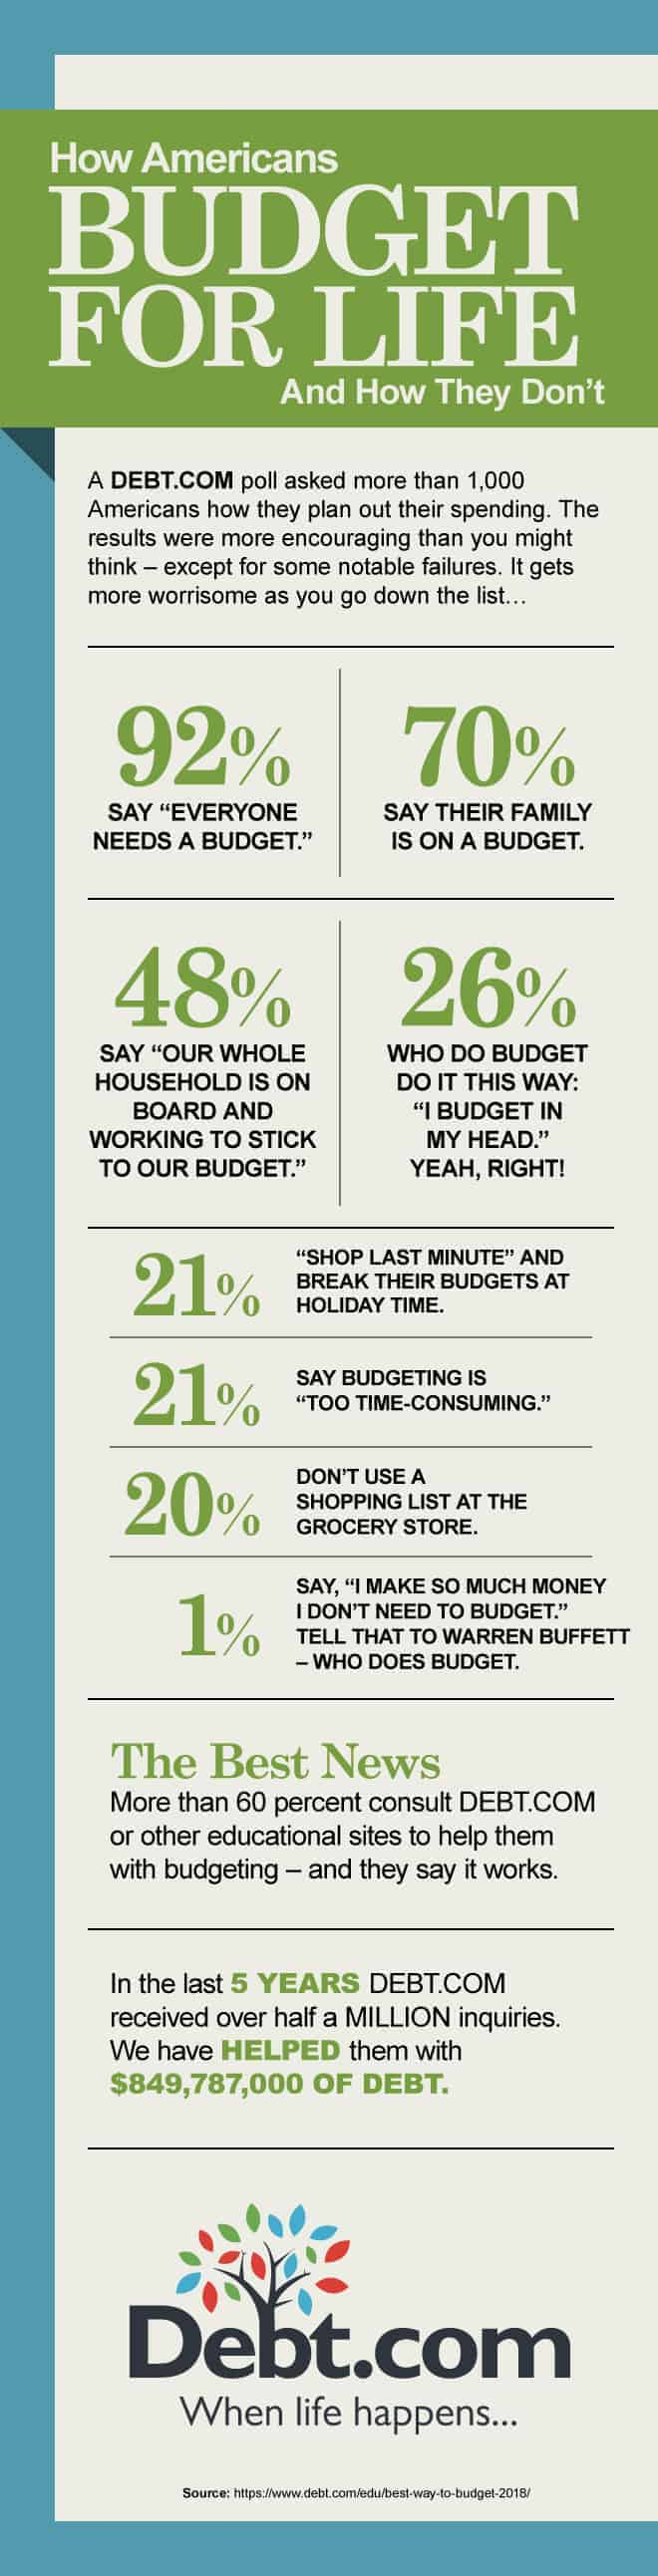 budget survey results infographic